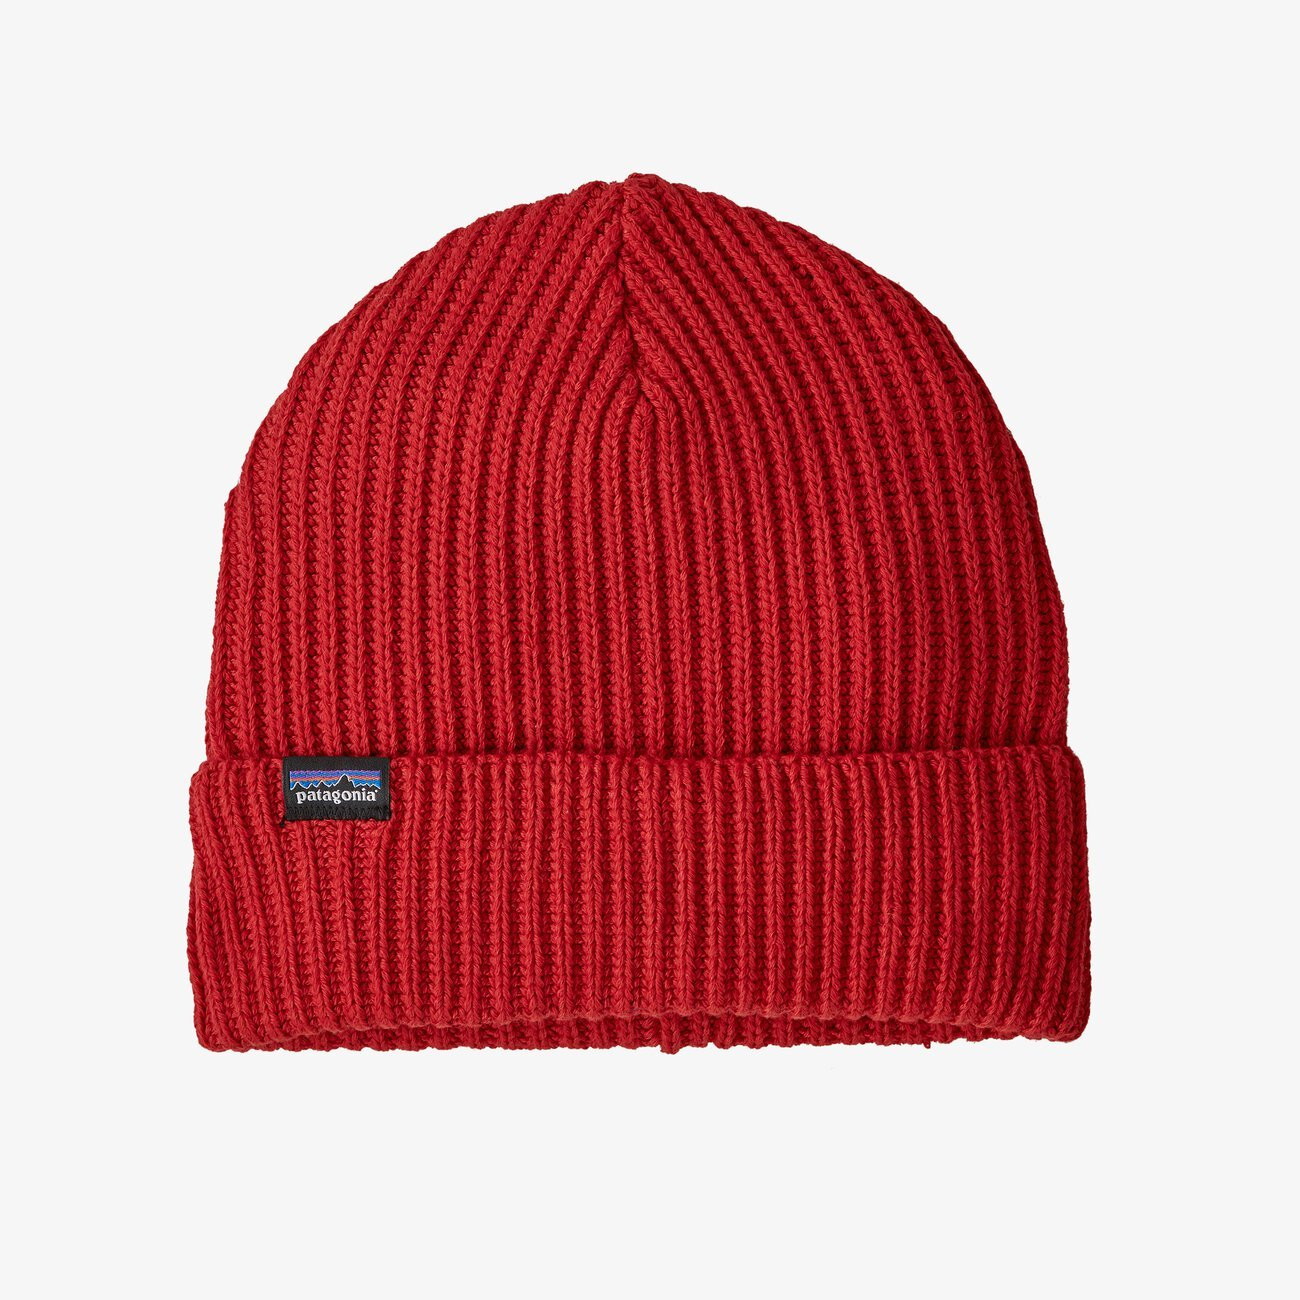 Patagonia Fisherman's Rolled Beanie - Hot Ember